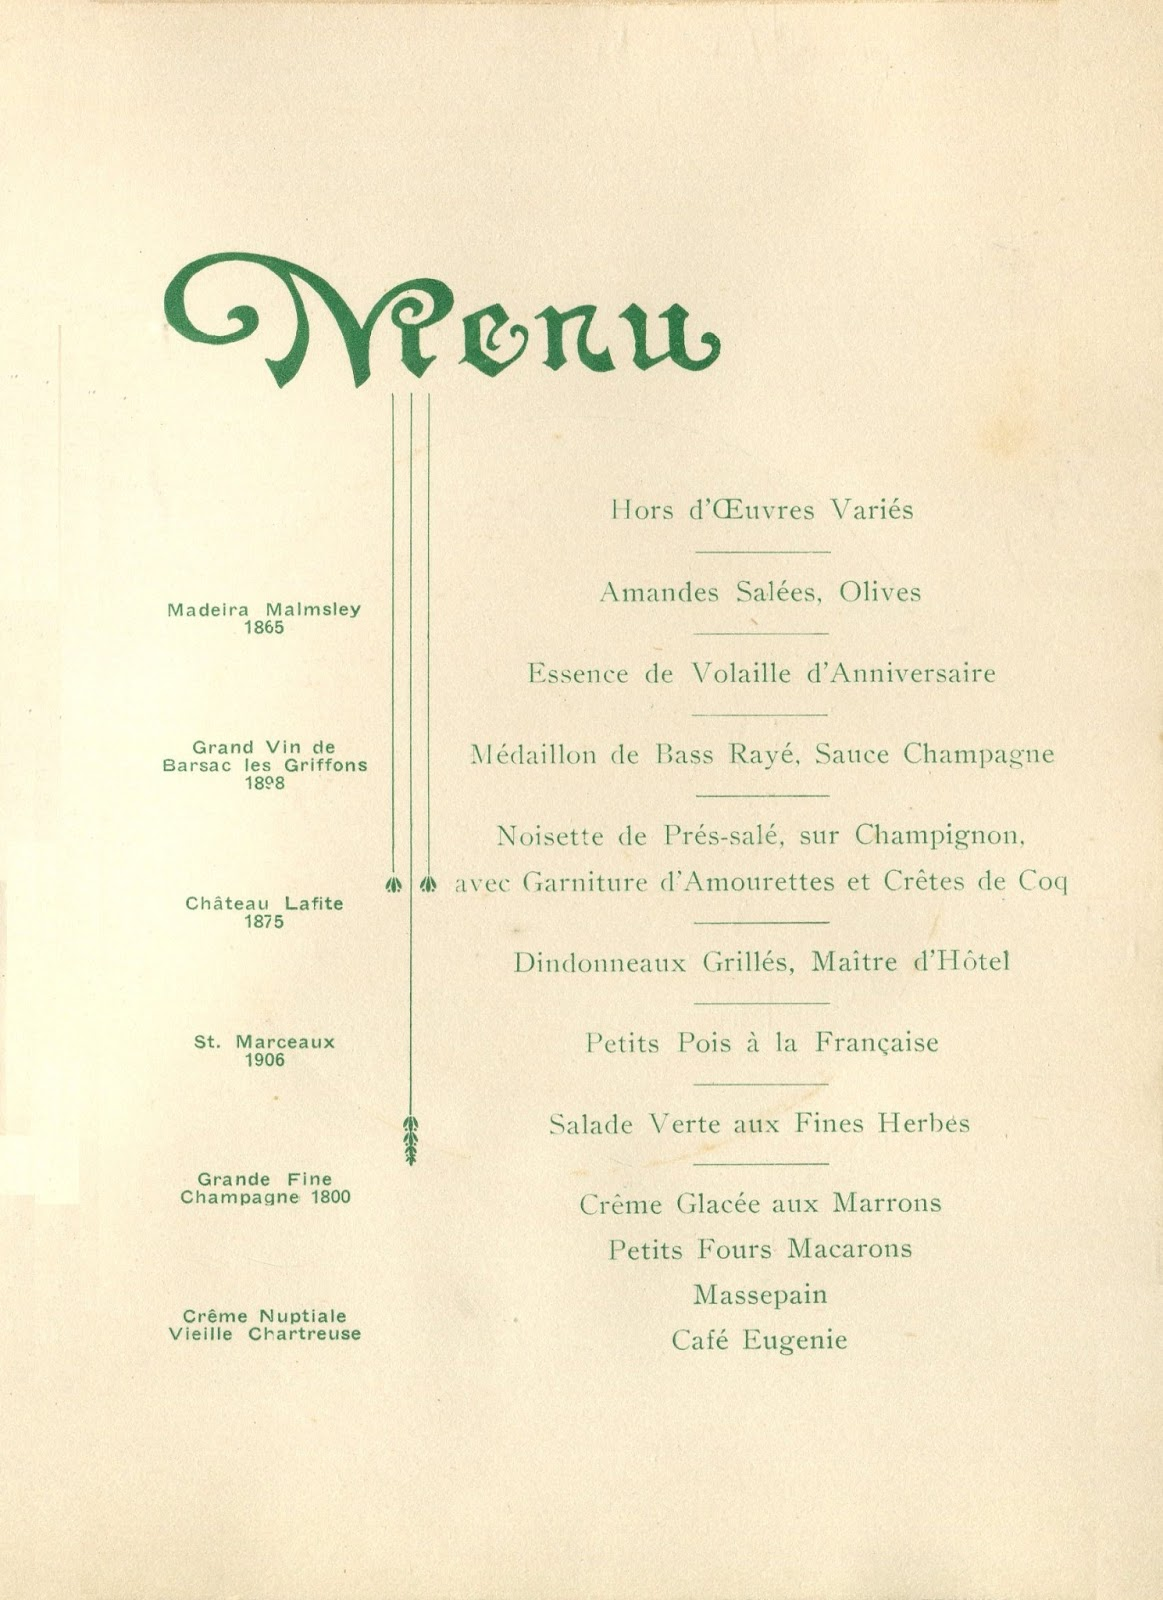 Dinner party set menu 9 february 1920 5 x 7 190 in p 4